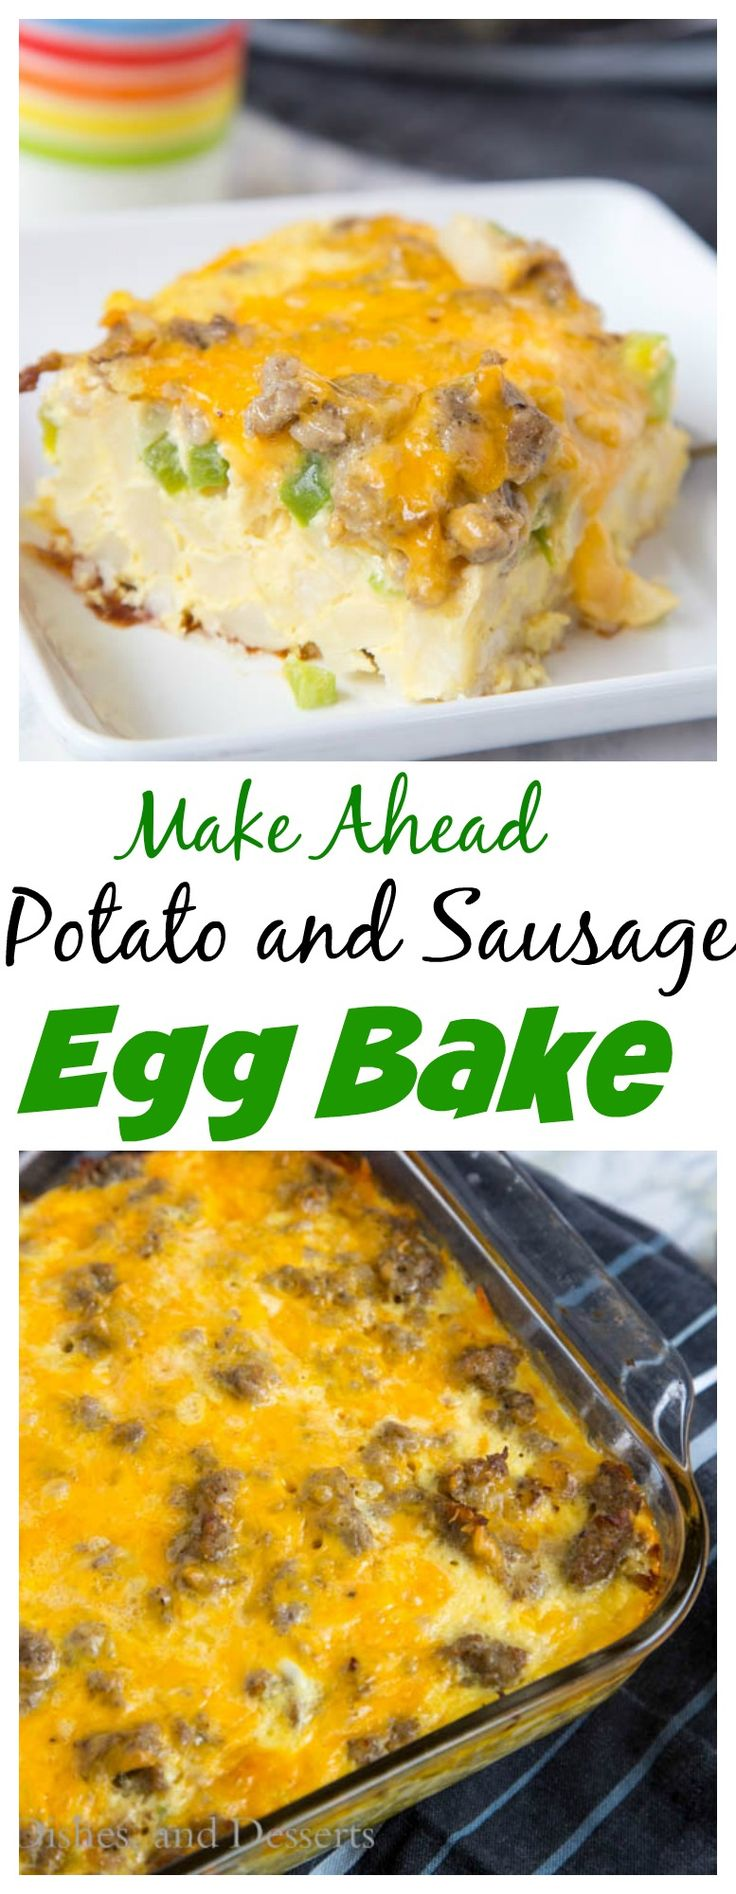 Make Ahead Potato and Sausage Egg Bake – a super easy make ahead egg bake made with hash browns, sausage, green peppers, and lots of cheese!  Perfect for brunch or when you have a house full of people!